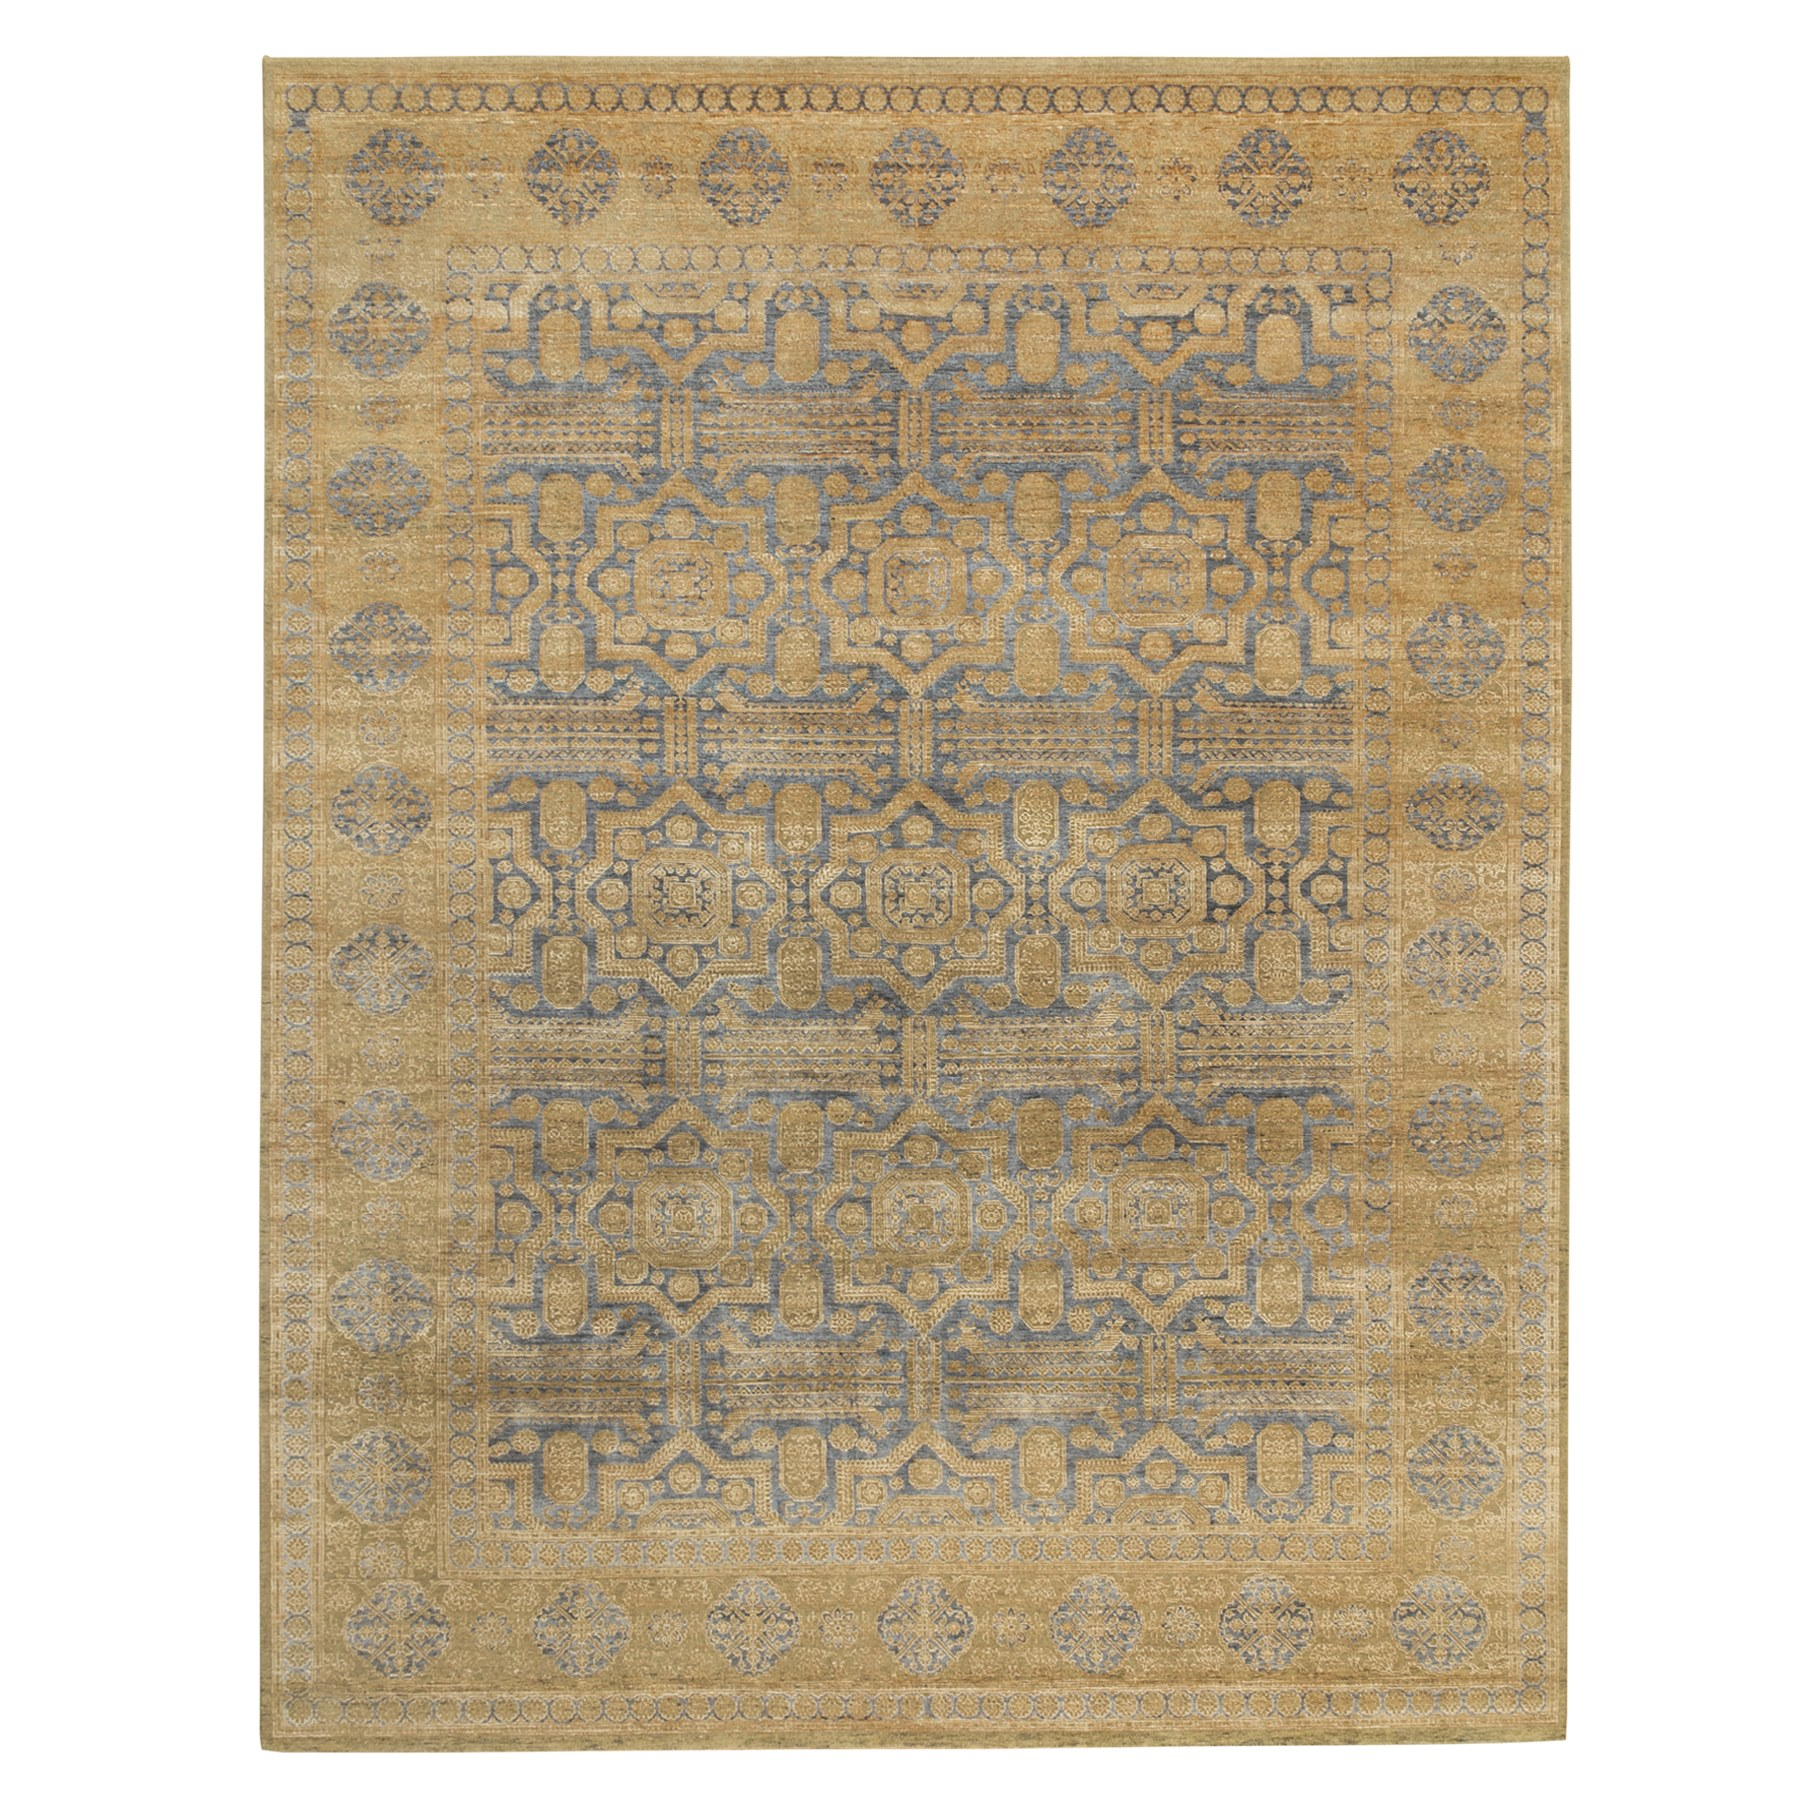 9'x12' Hand Knotted Mamluk Antiqued Gold Design Silk With Textured Wool Oriental Rug